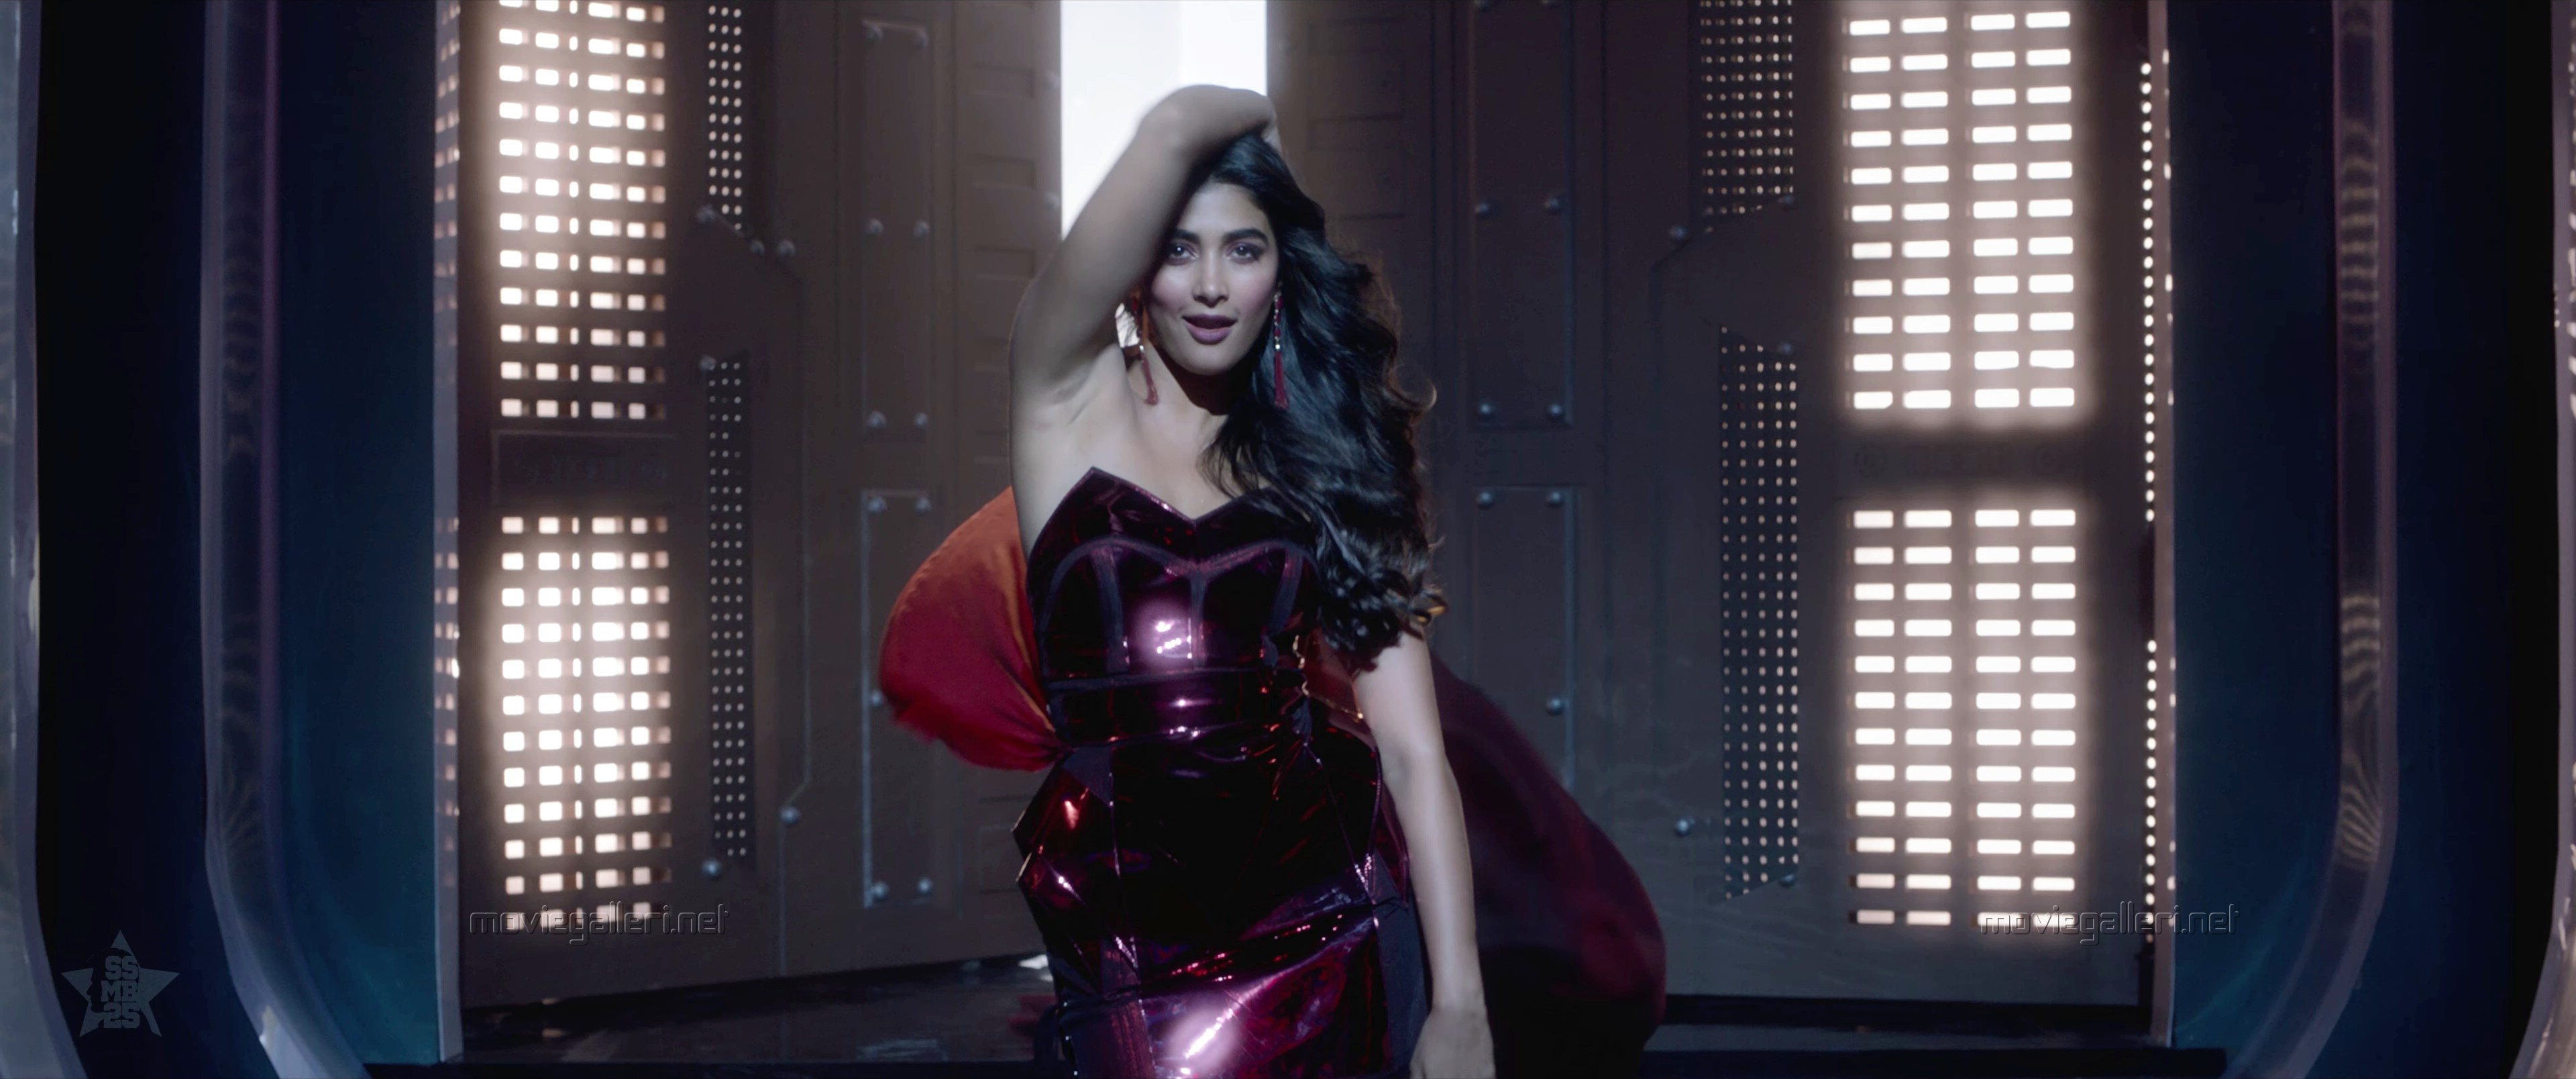 Actress Pooja Hegde in Maharshi Movie Images HD